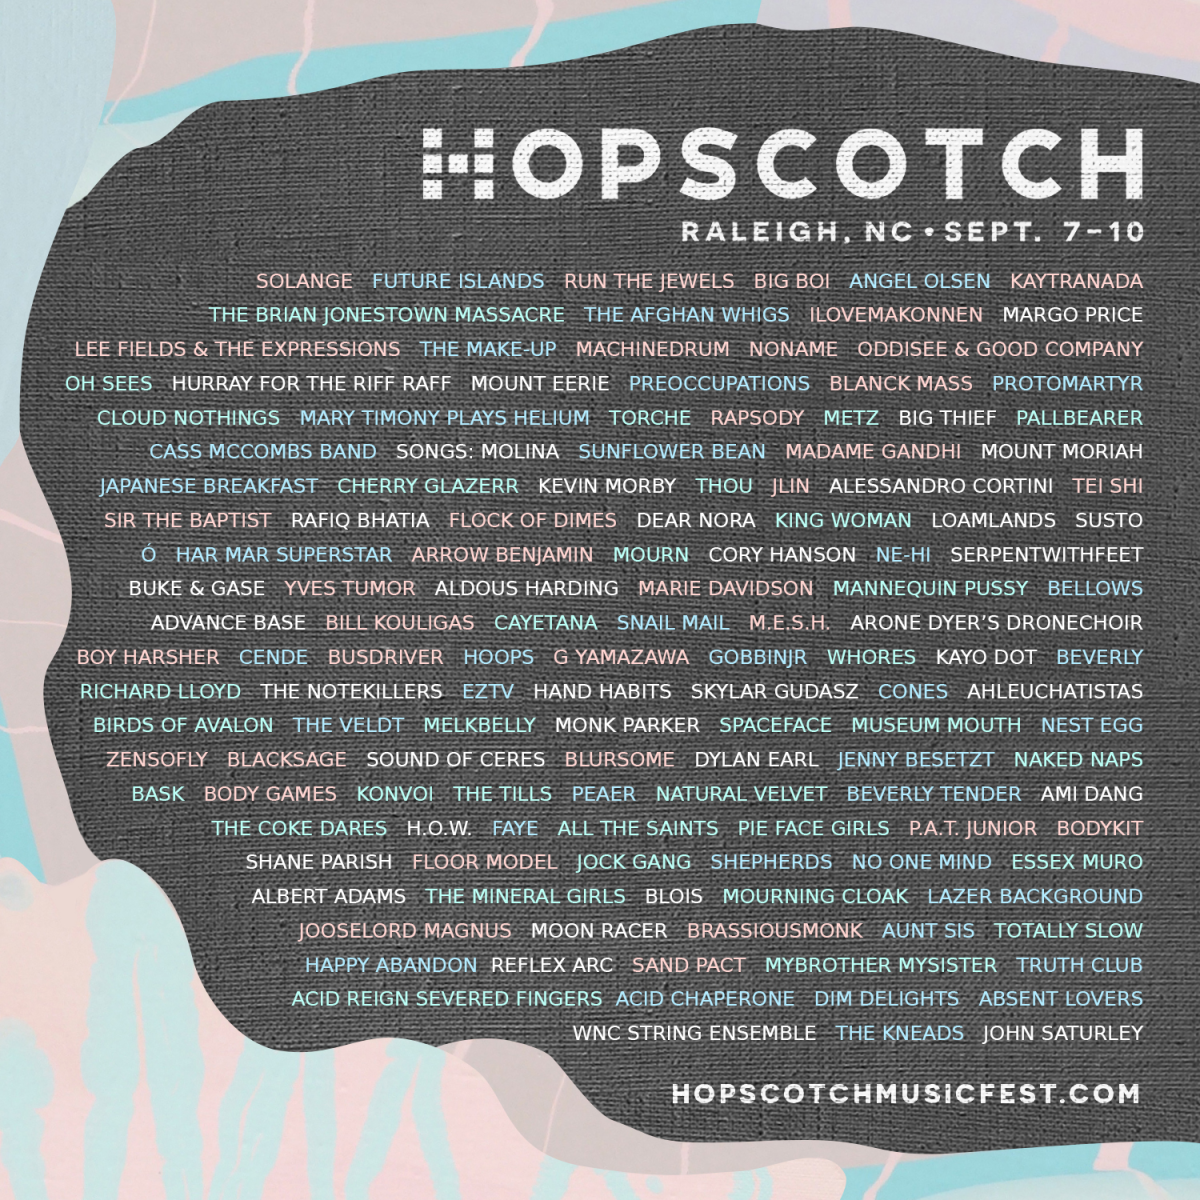 Hopscotch Music Fest lineup flyer